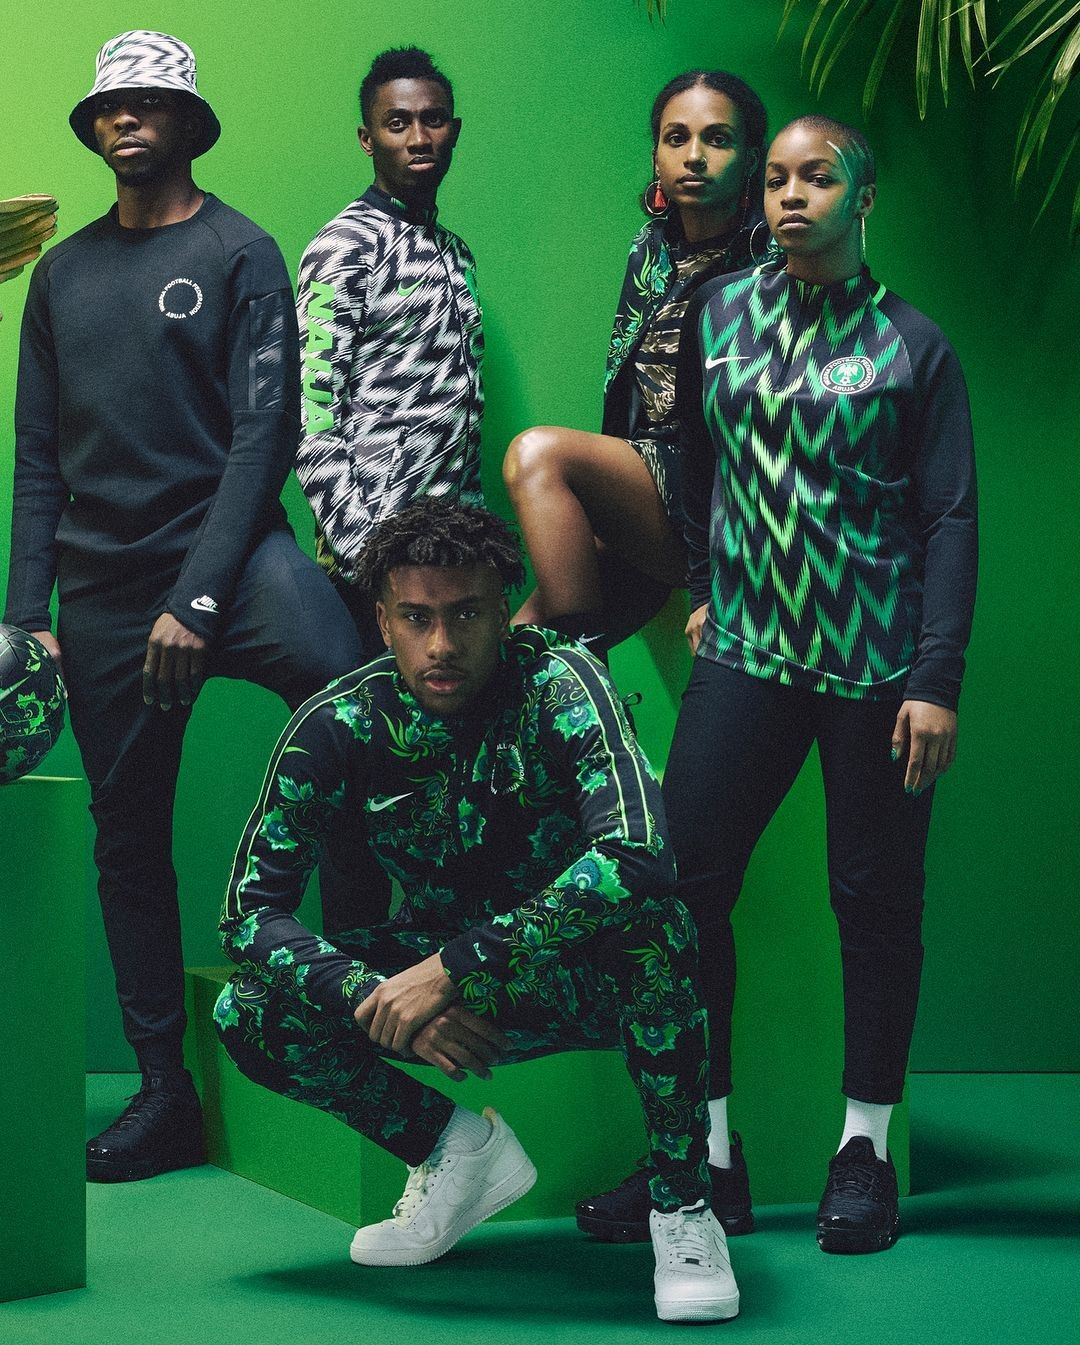 59957c2aa4b The Nigeria National Team Collection.  Nike  NikeFootball  Naija  Football   NikeSoccer  SuperEagles